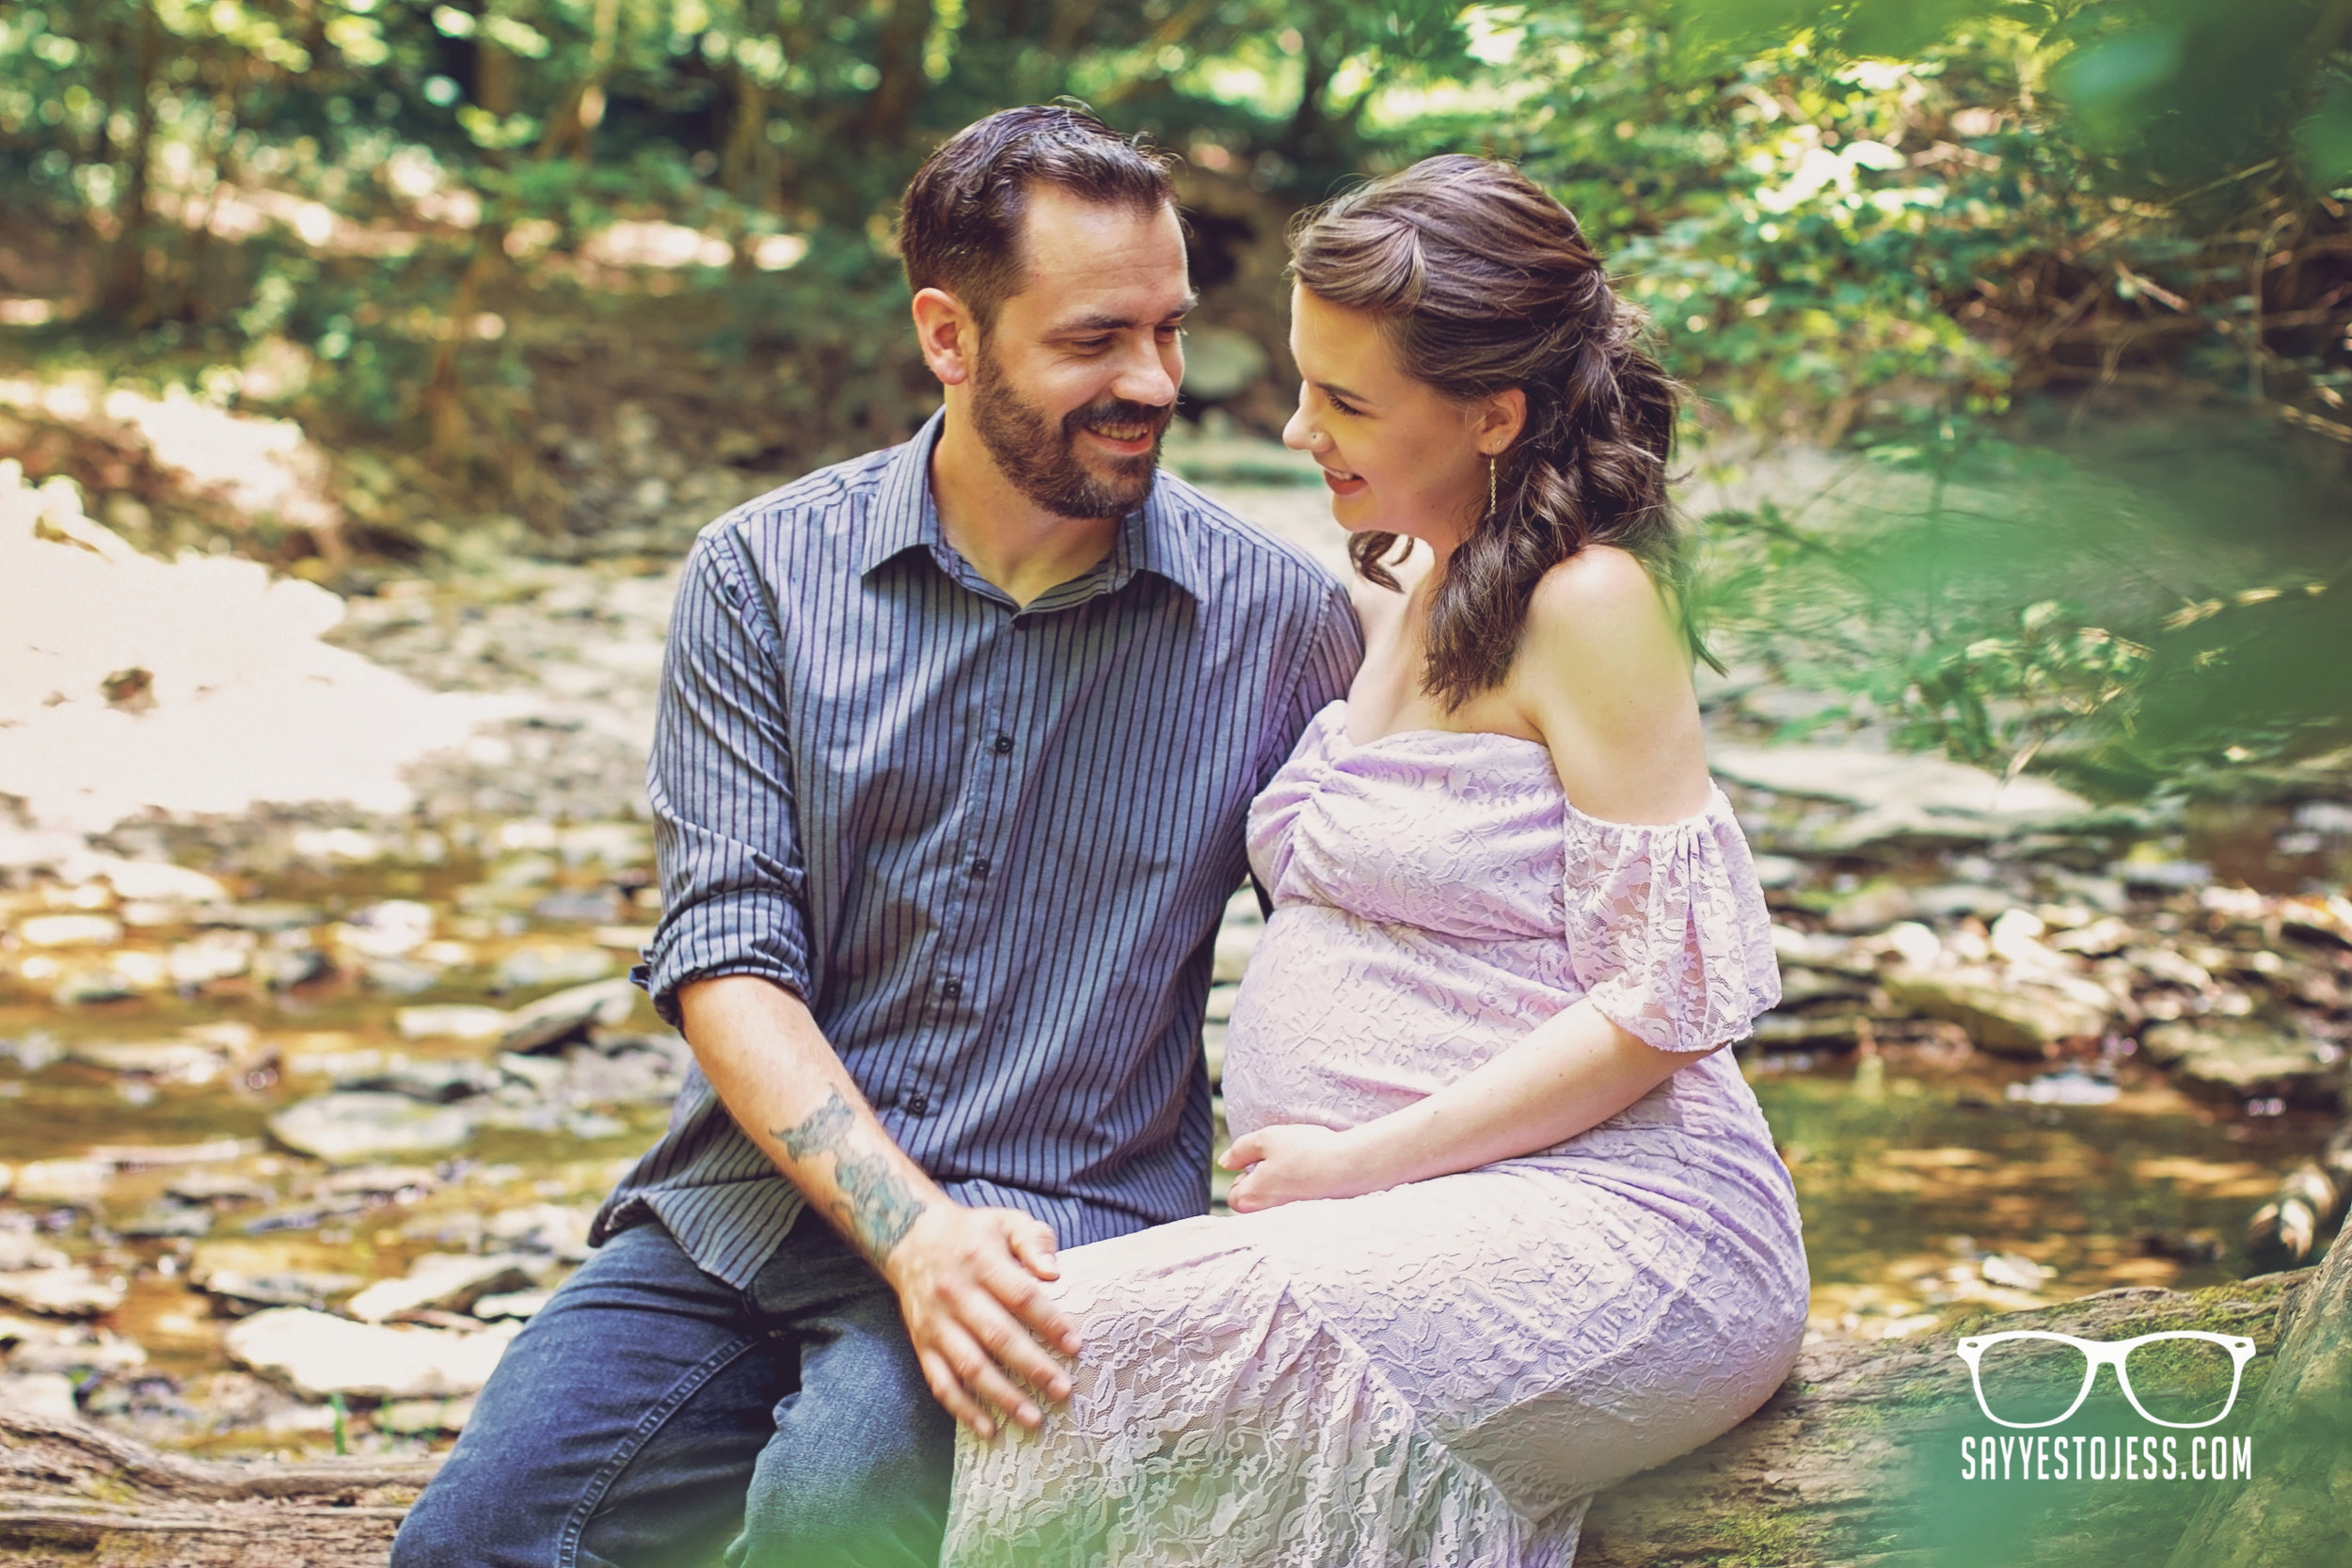 Cincinnati Family Photographer Jess Summers of Say Yes To Jess Captures stunning Maternity photos for new moms in Cincinnati Ohio.jpg